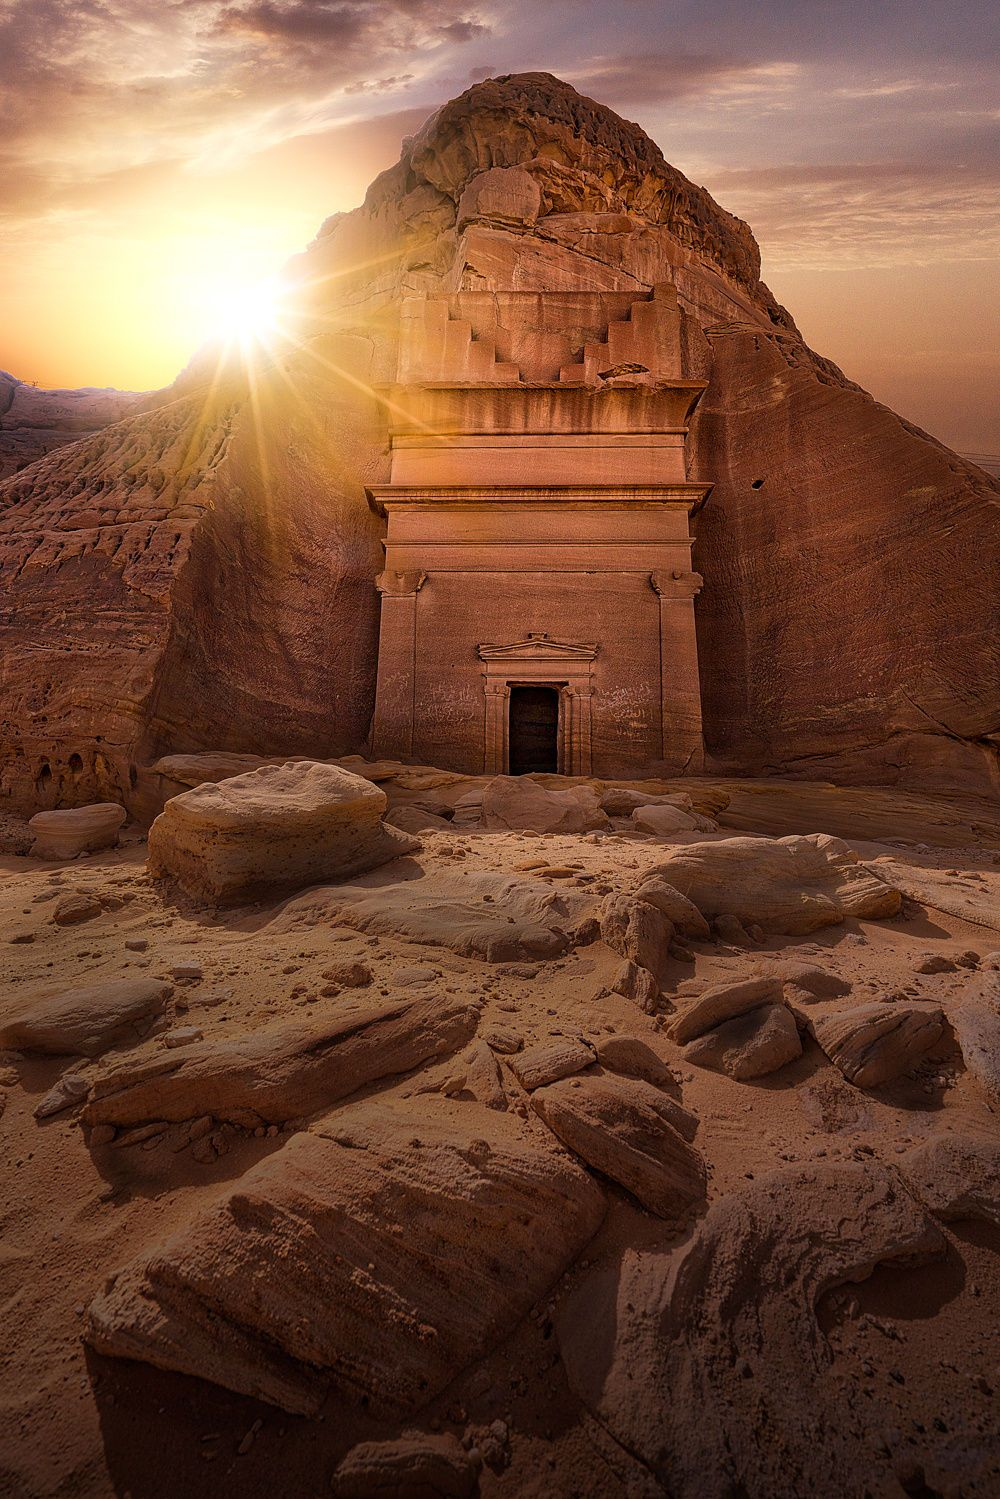 Maddin Saleh by Mohammed Abdo on 500px